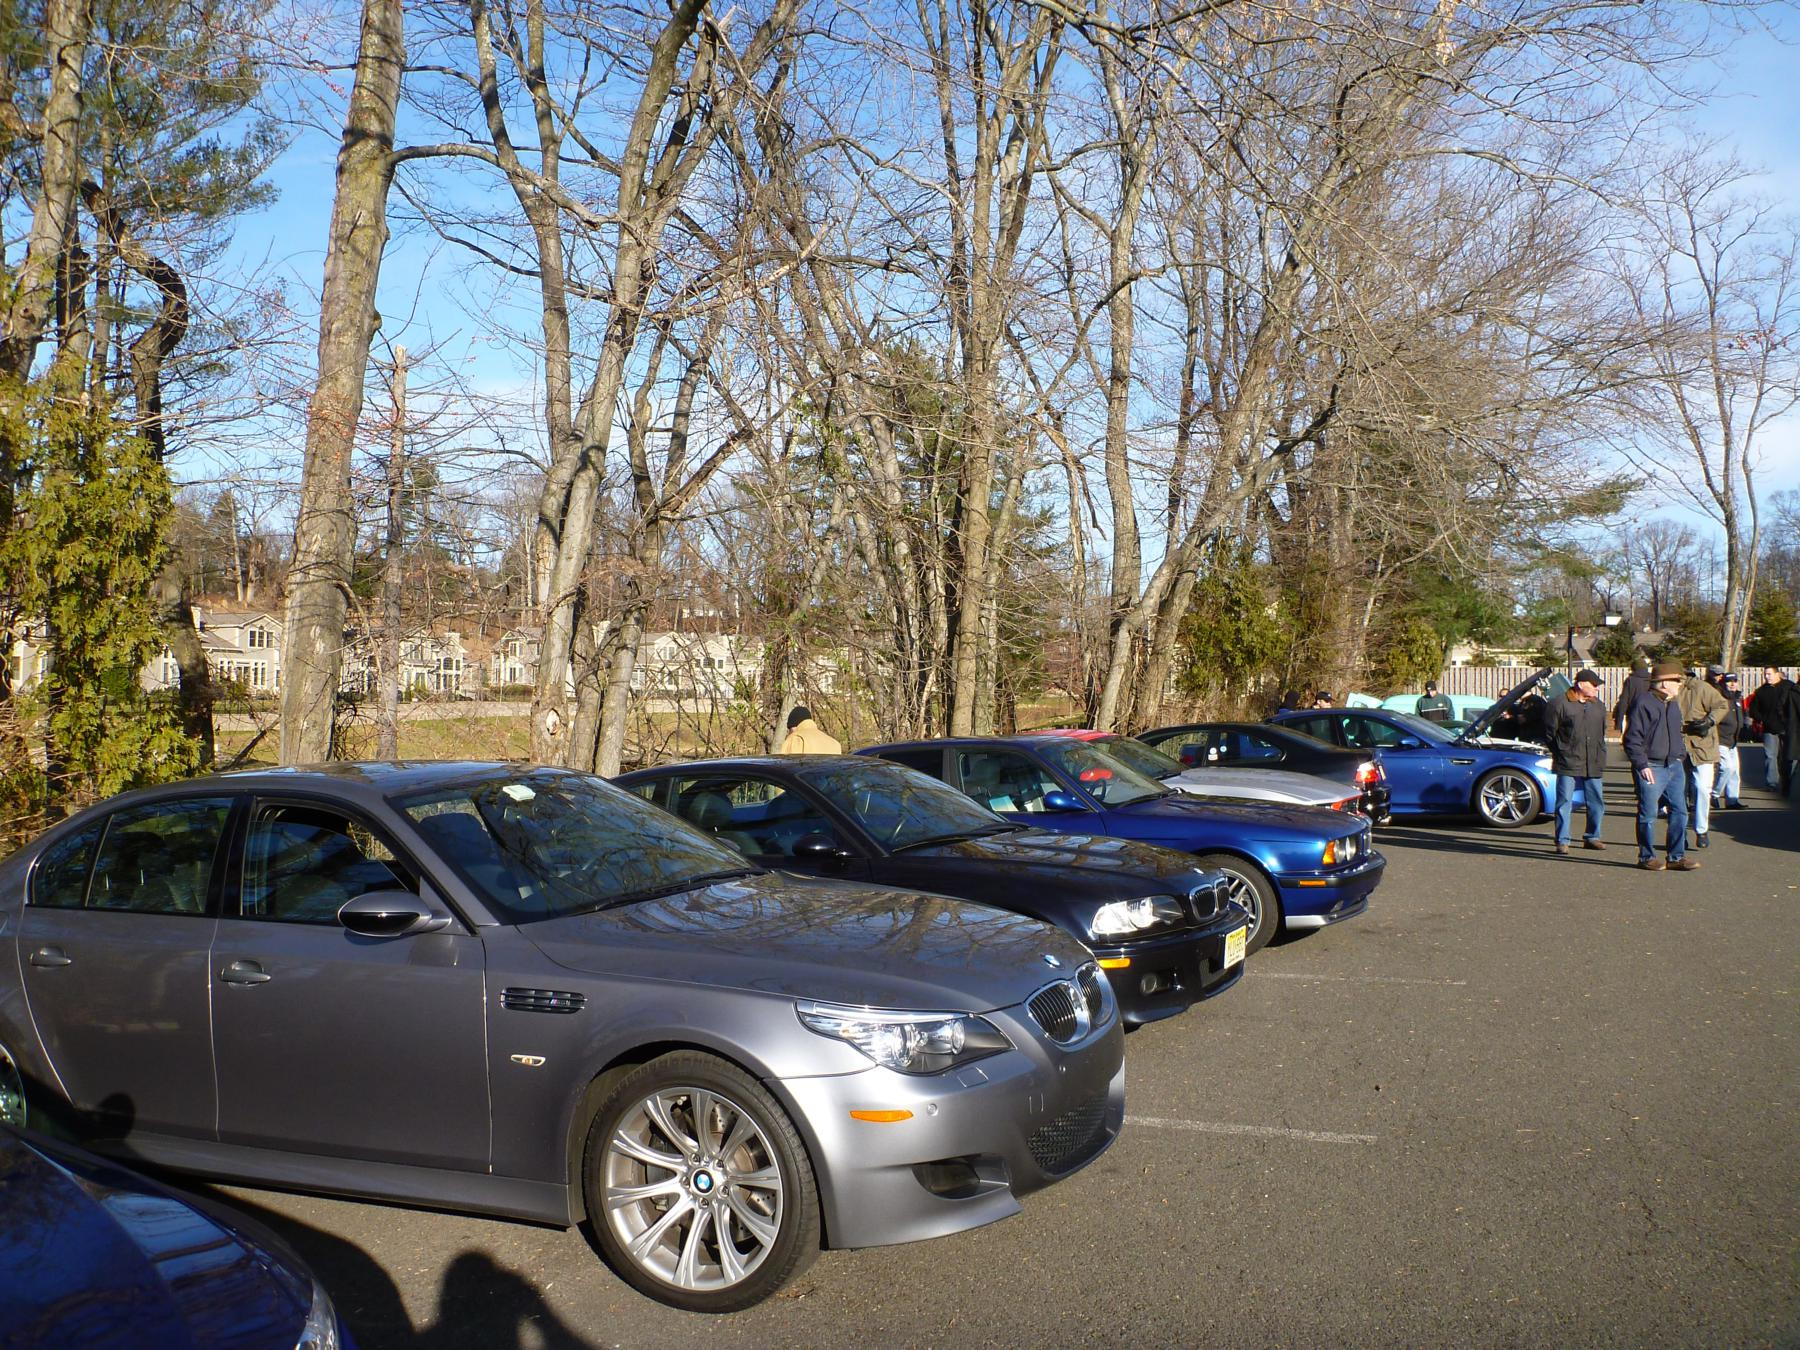 F10 M5 at NJ Cars and Coffee - 12/18/2011-12-18-2011-025_1800x1350.jpg